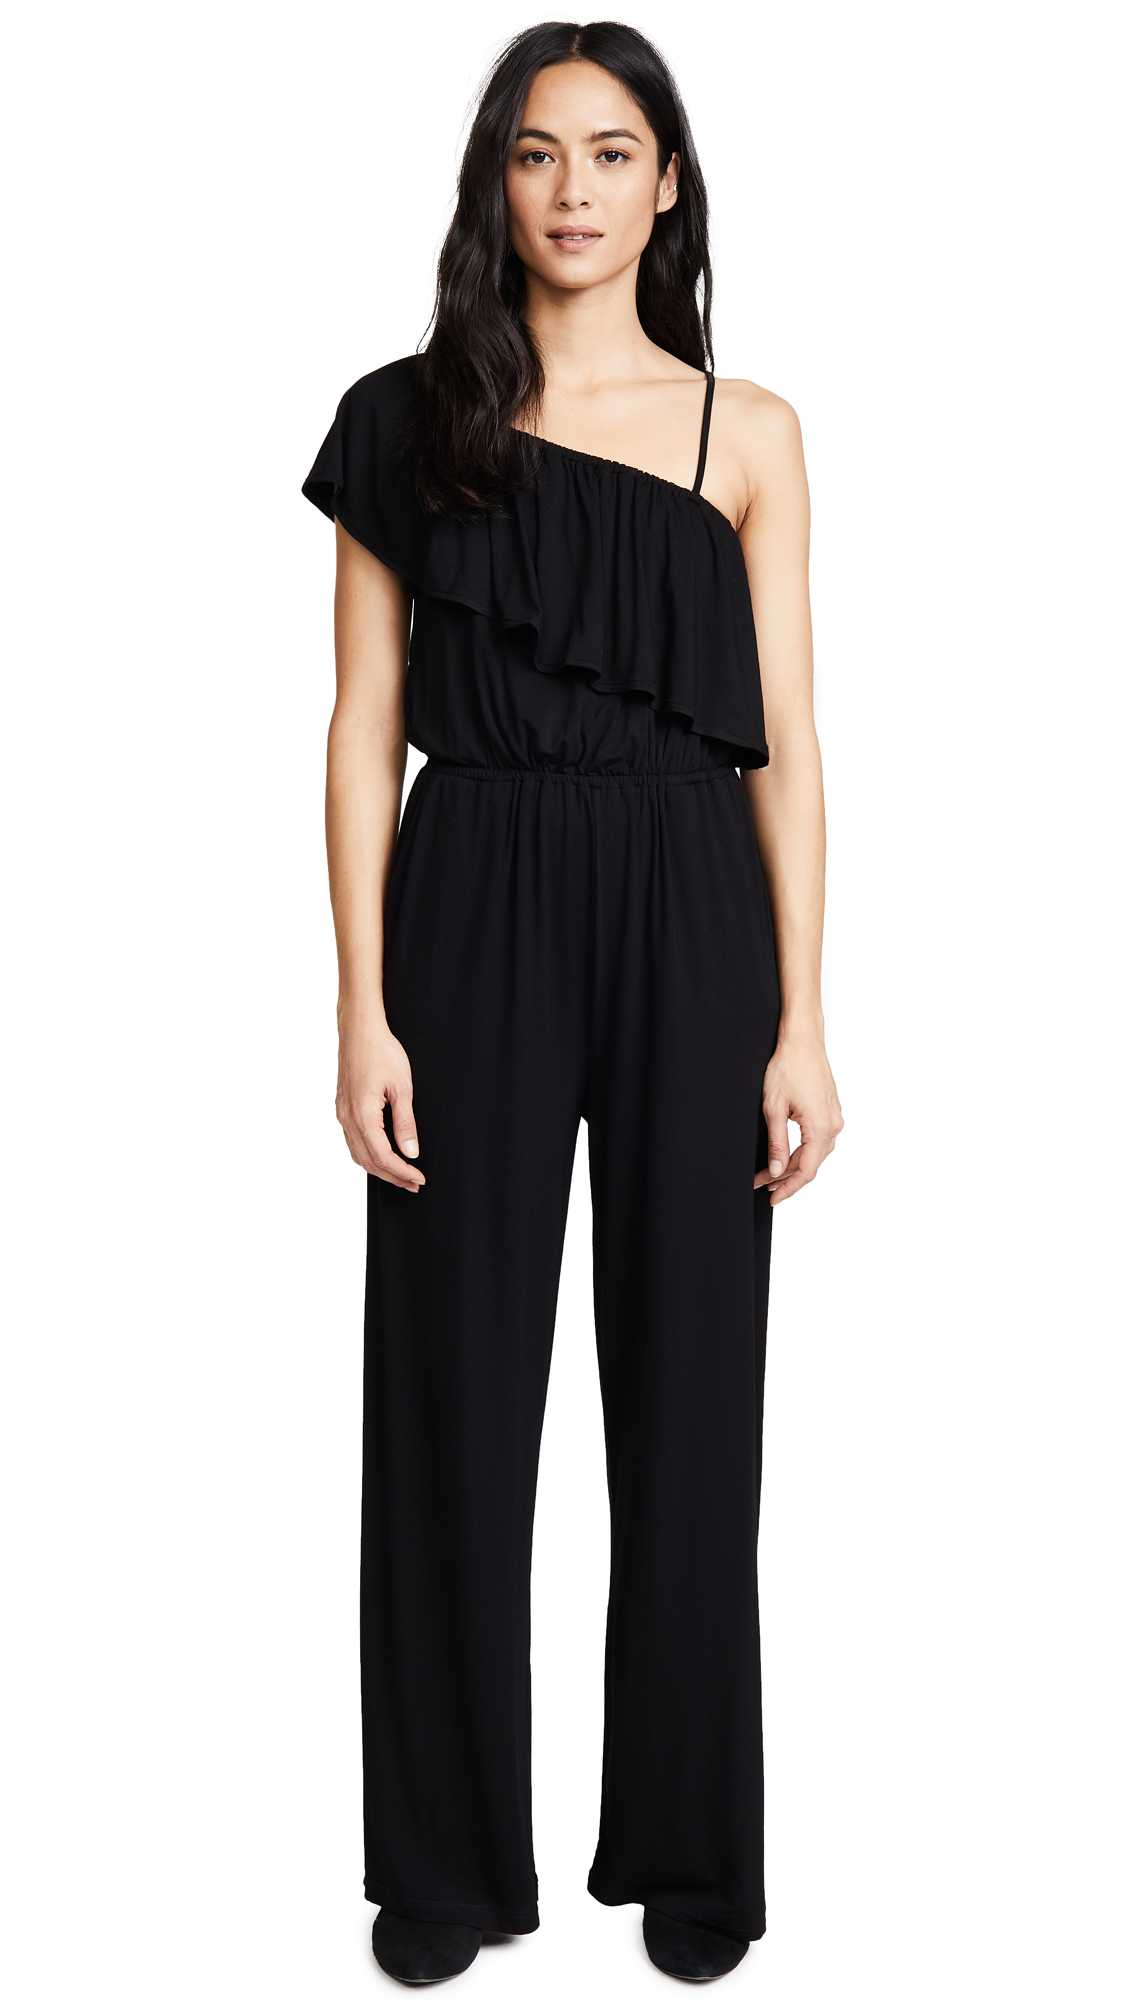 BB Dakota Maryana One Shoulder Ruffle Jumpsuit - Black